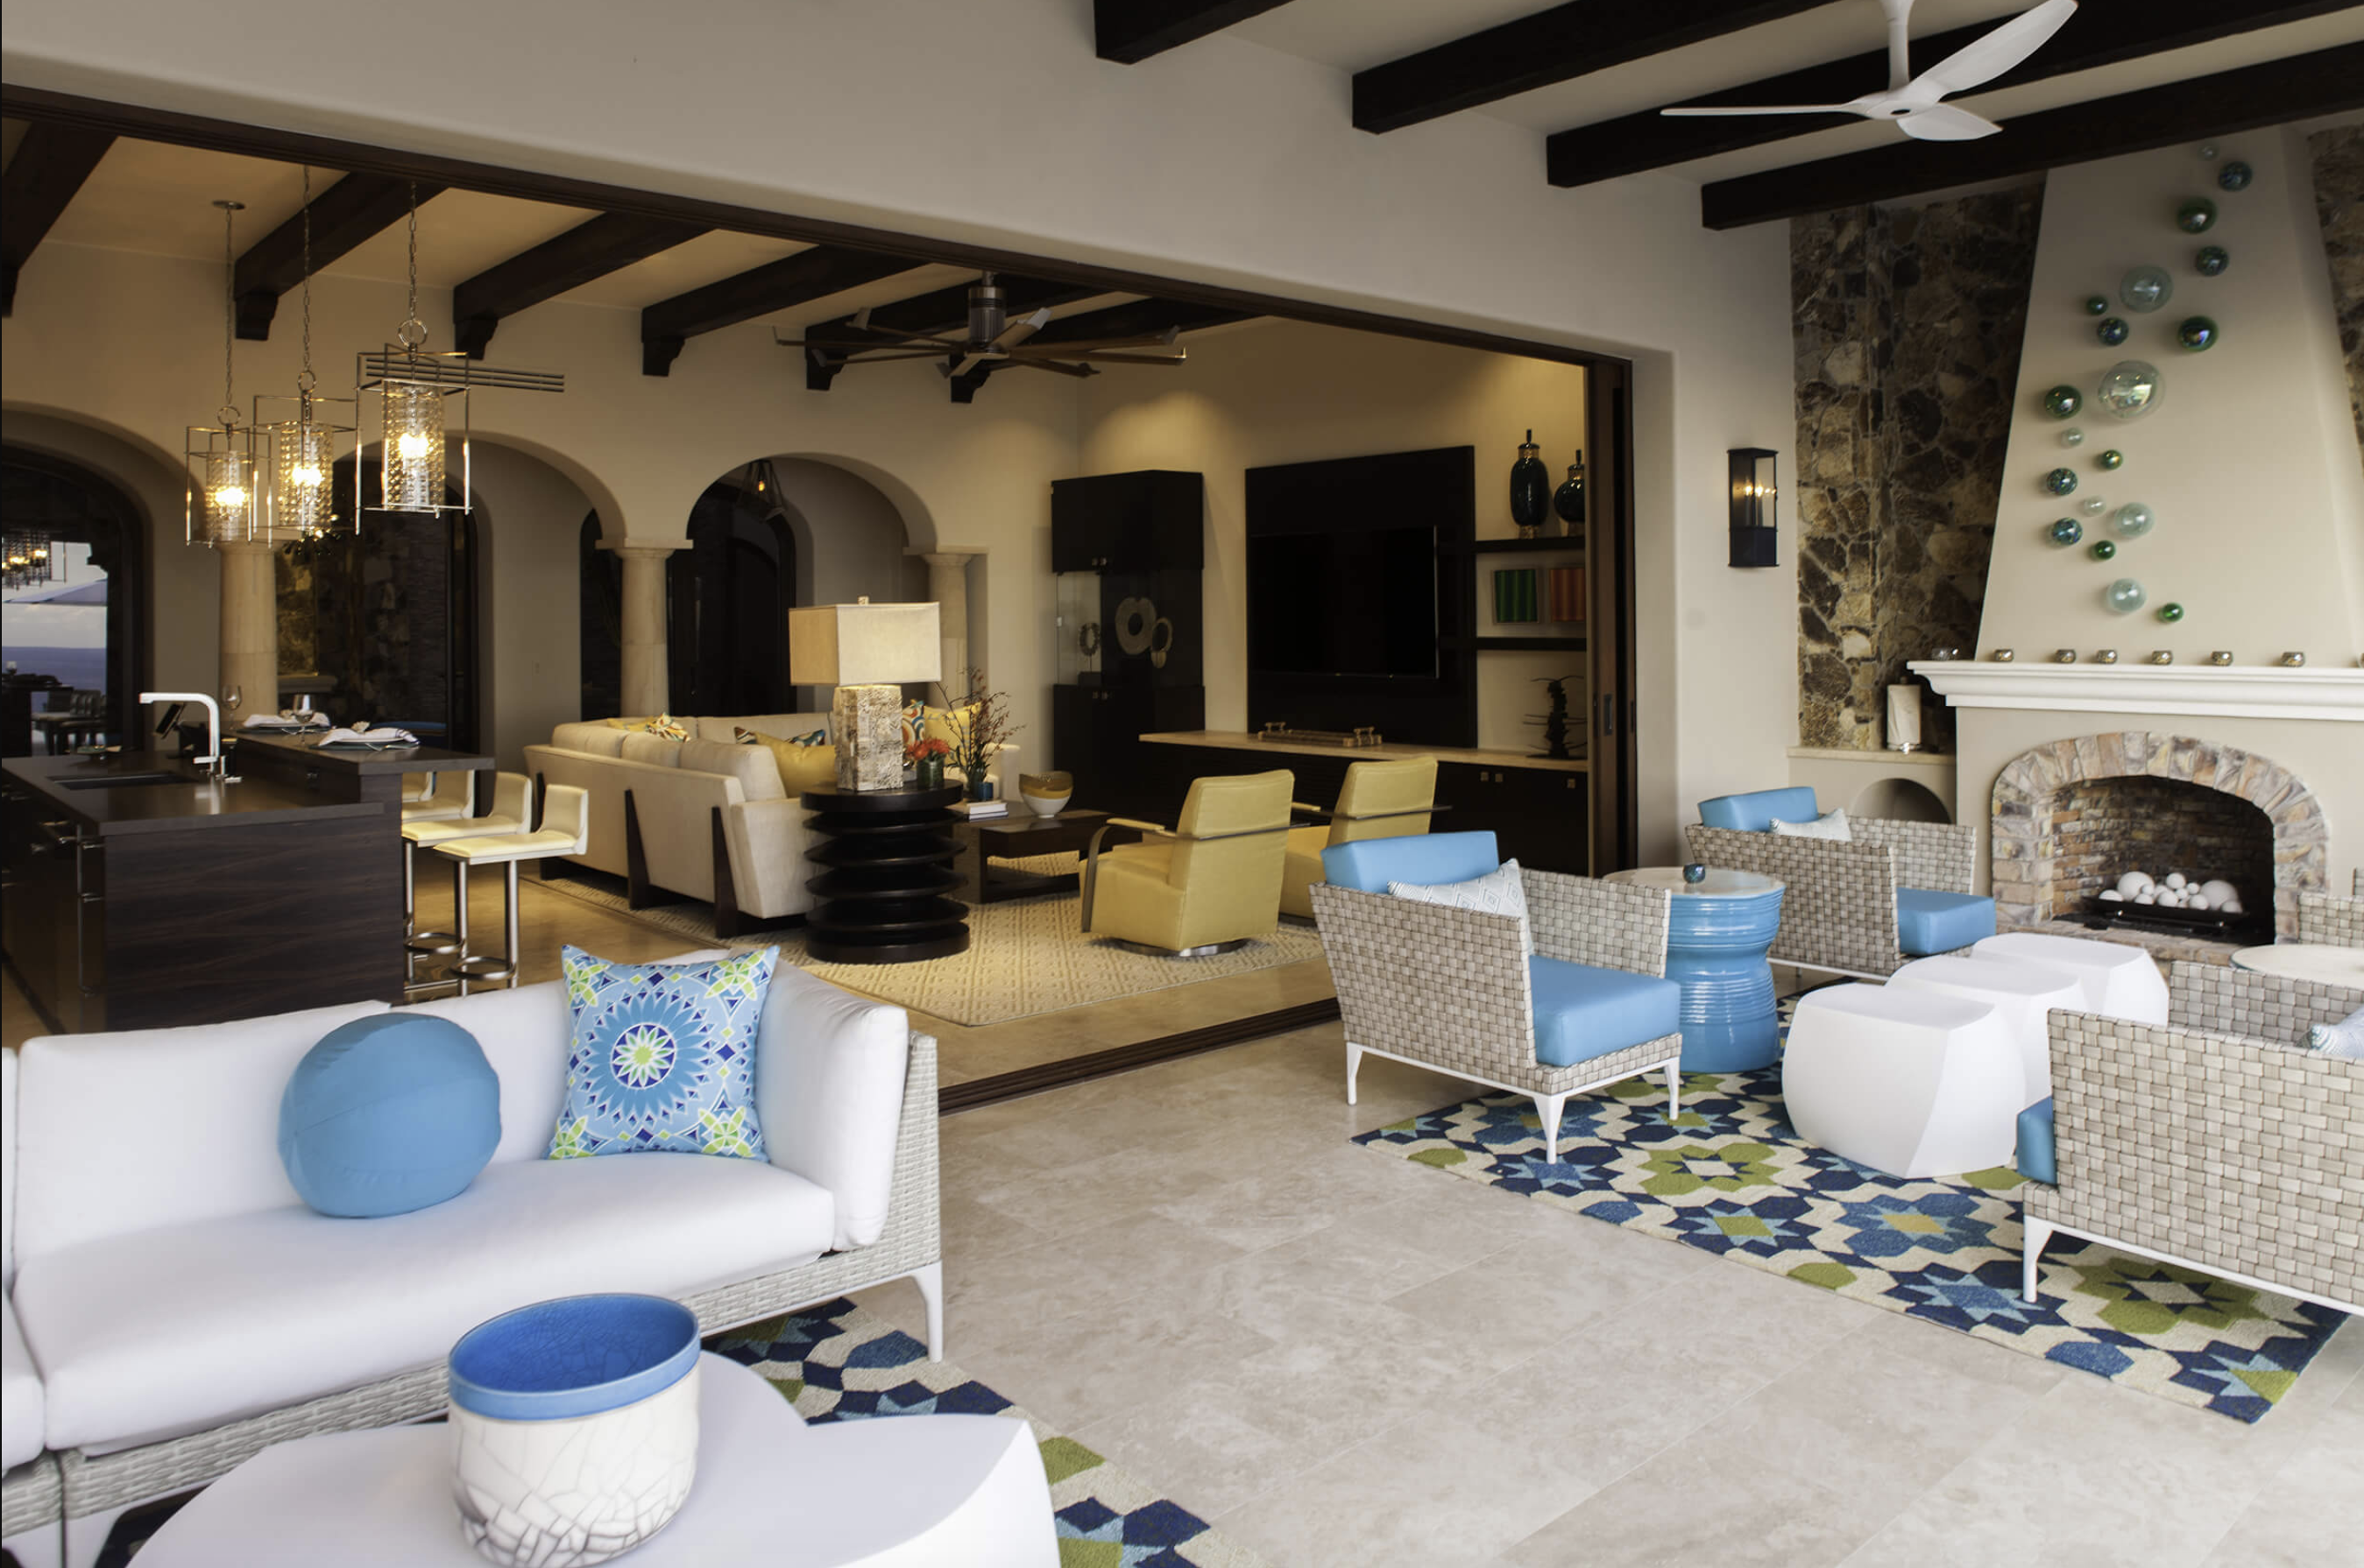 The best hospitality design in Cabo San Lucas, Mexico. Lynn Yellen of Resort Design Group